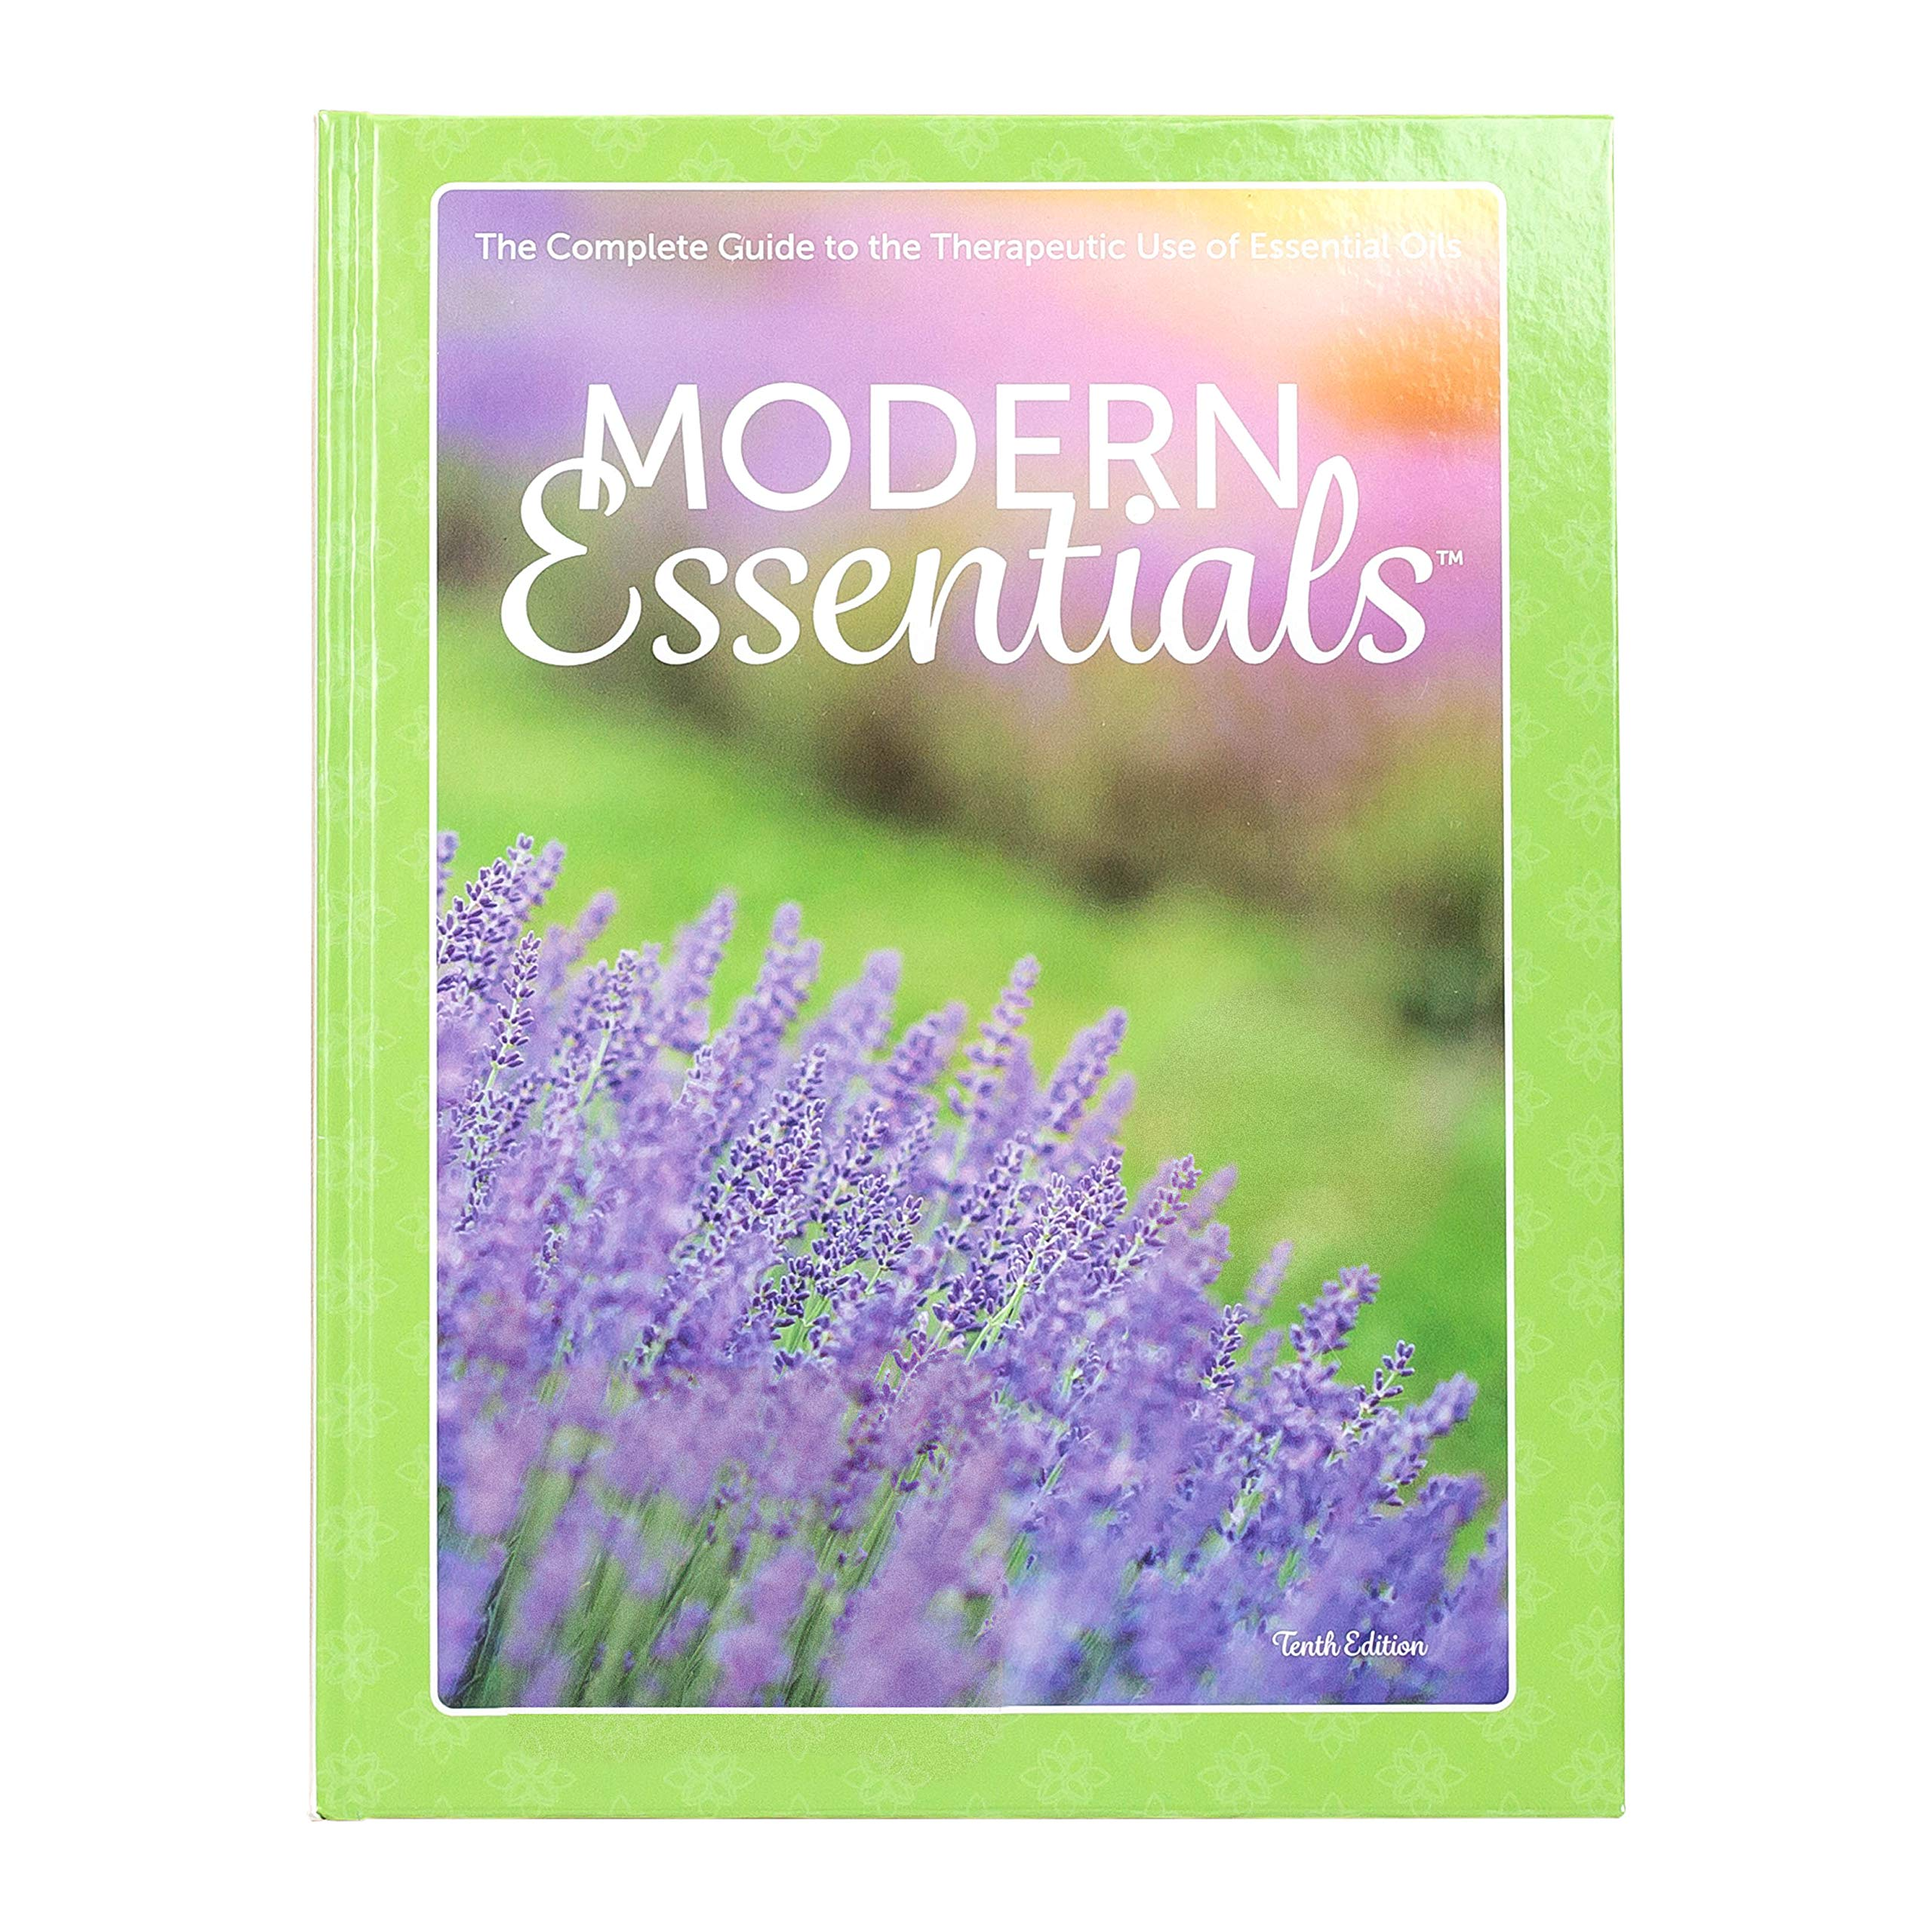 Modern Essentials 10th Edition, Essential Oil Reference Book featuring doTERRA oil names & new 2018 released oils by AROMATOOLS